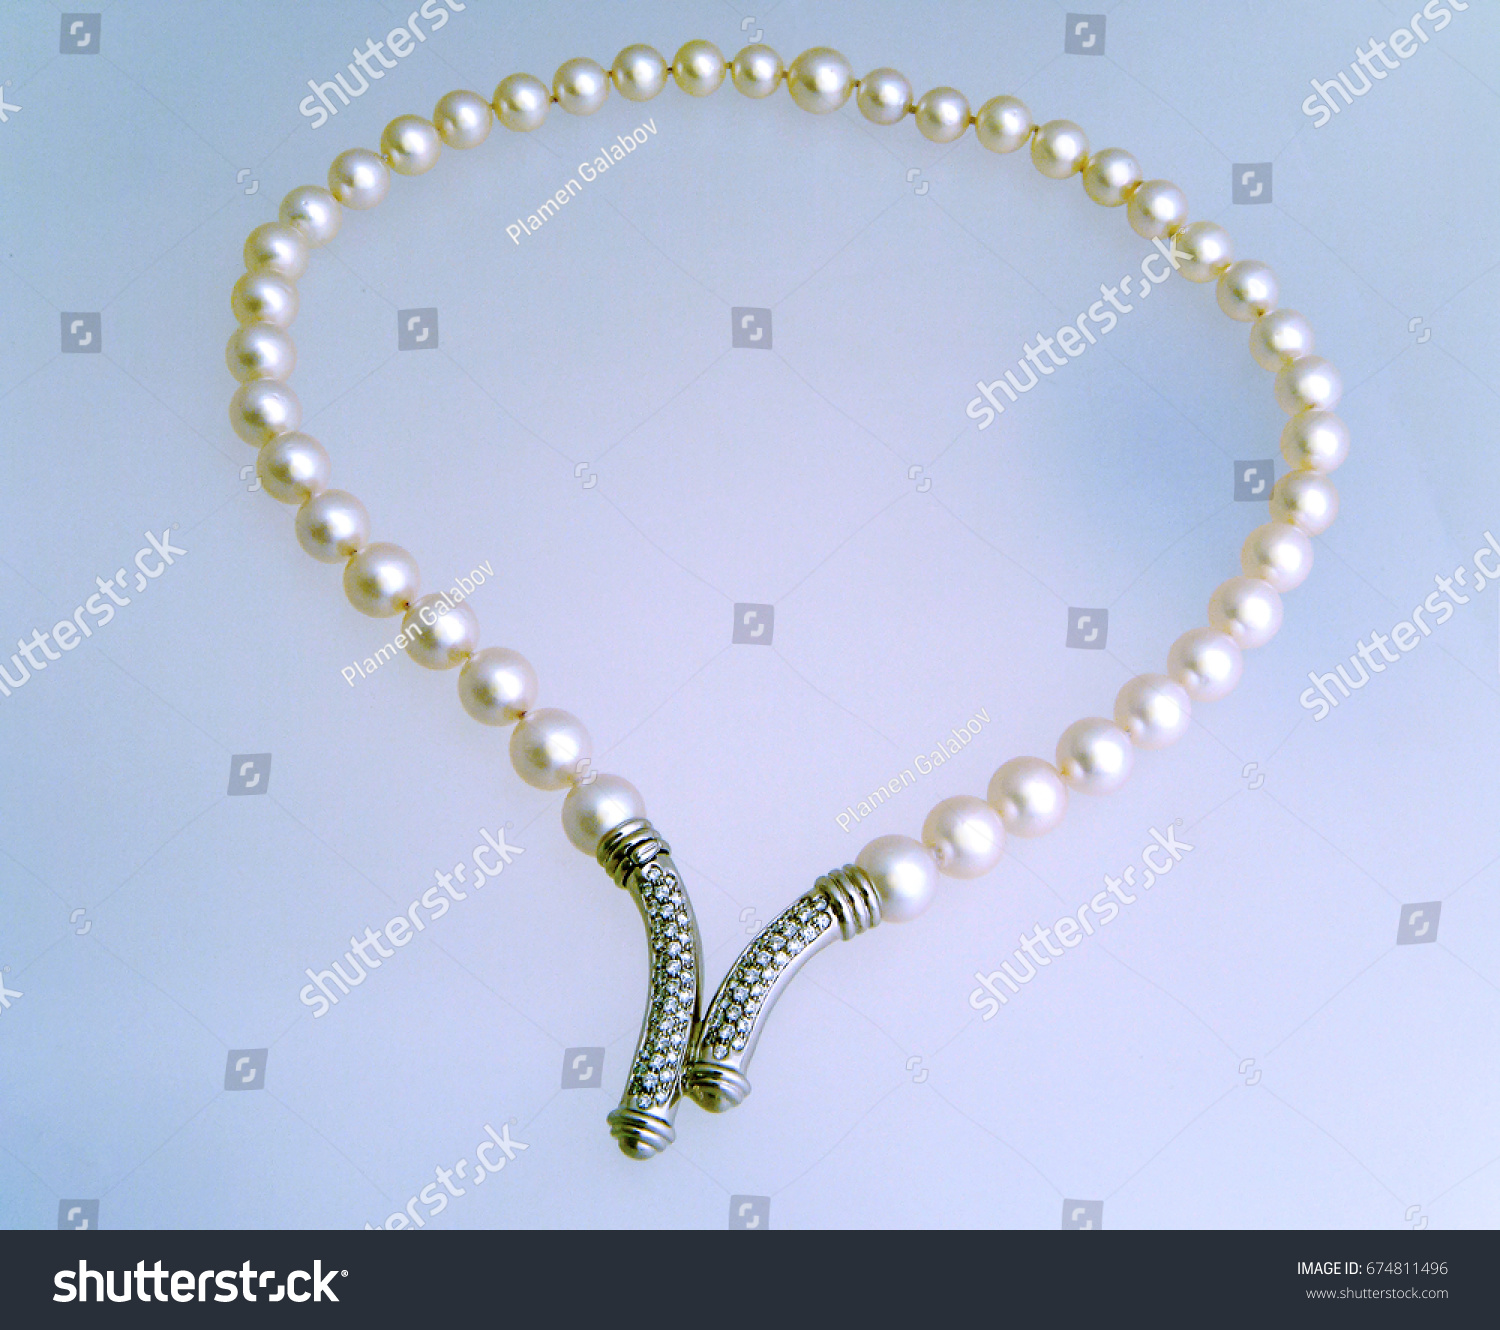 are expensive pearls of the american collection more cultured pearl natural than